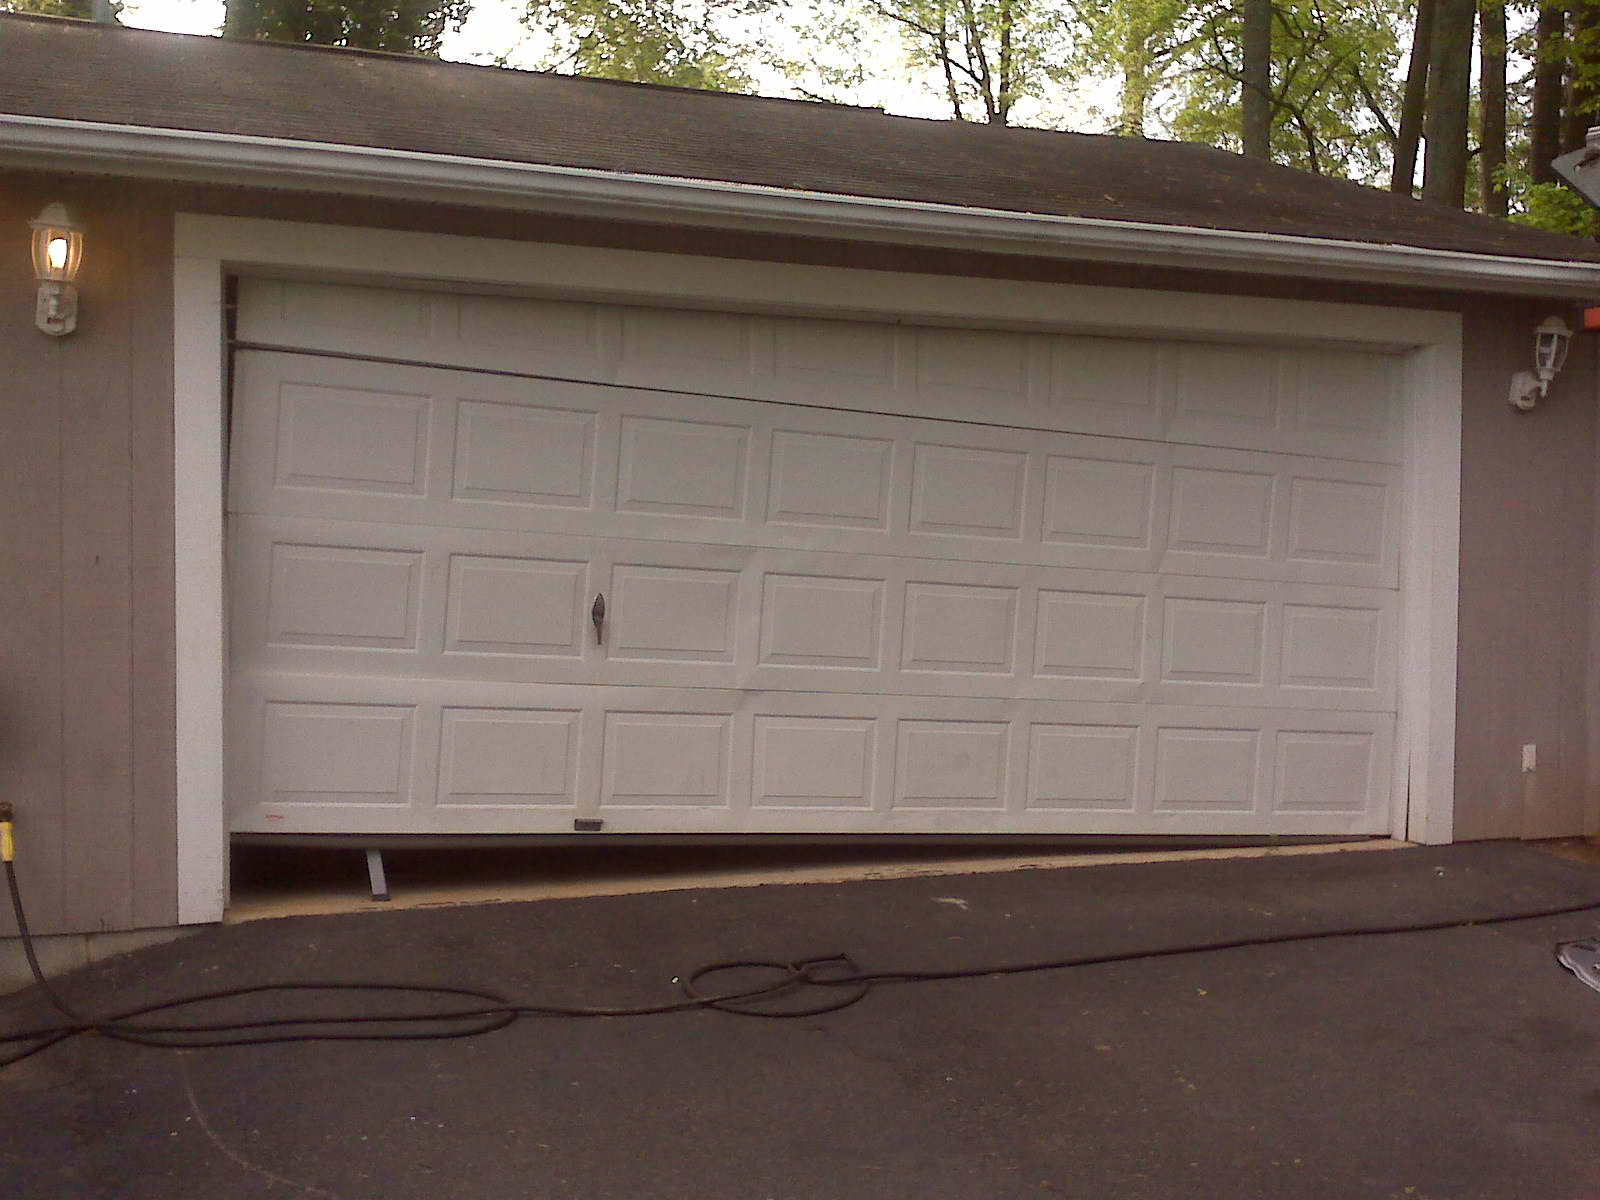 1200 #967335 Broken Garage Door 2 A Plus Garage Doors wallpaper Grarage Doors 38151600